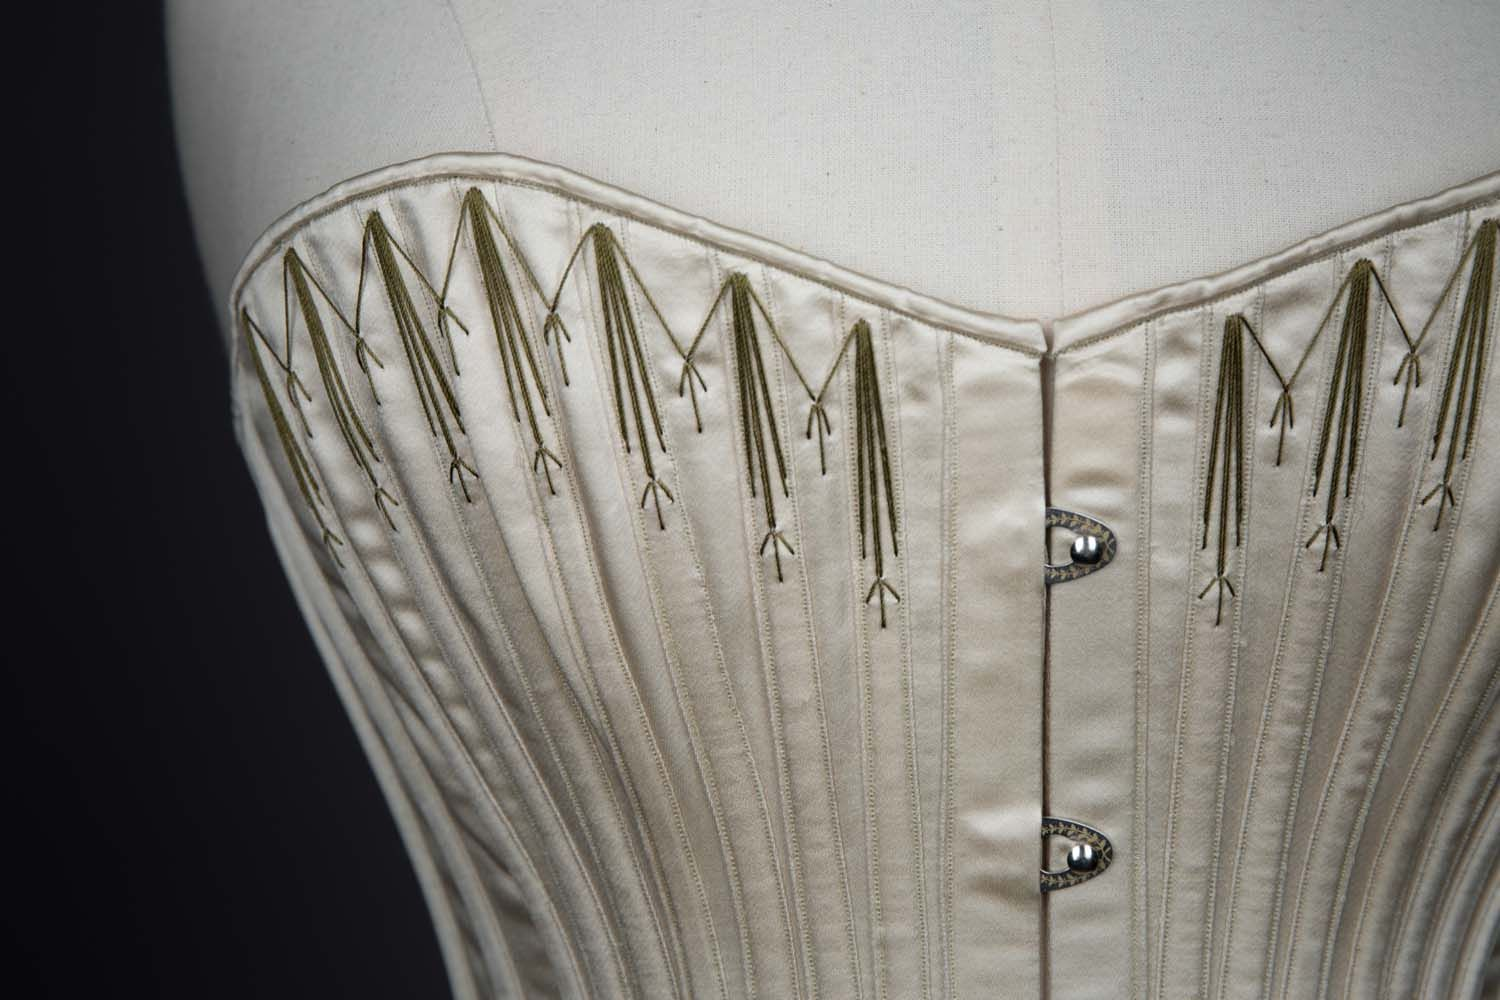 da7745136fc 1890s Symington Reproduction Silk Corset By Cathy Hay. The Underpinnings  Museum. Photography Tigz Rice ENGRAVED BUSK